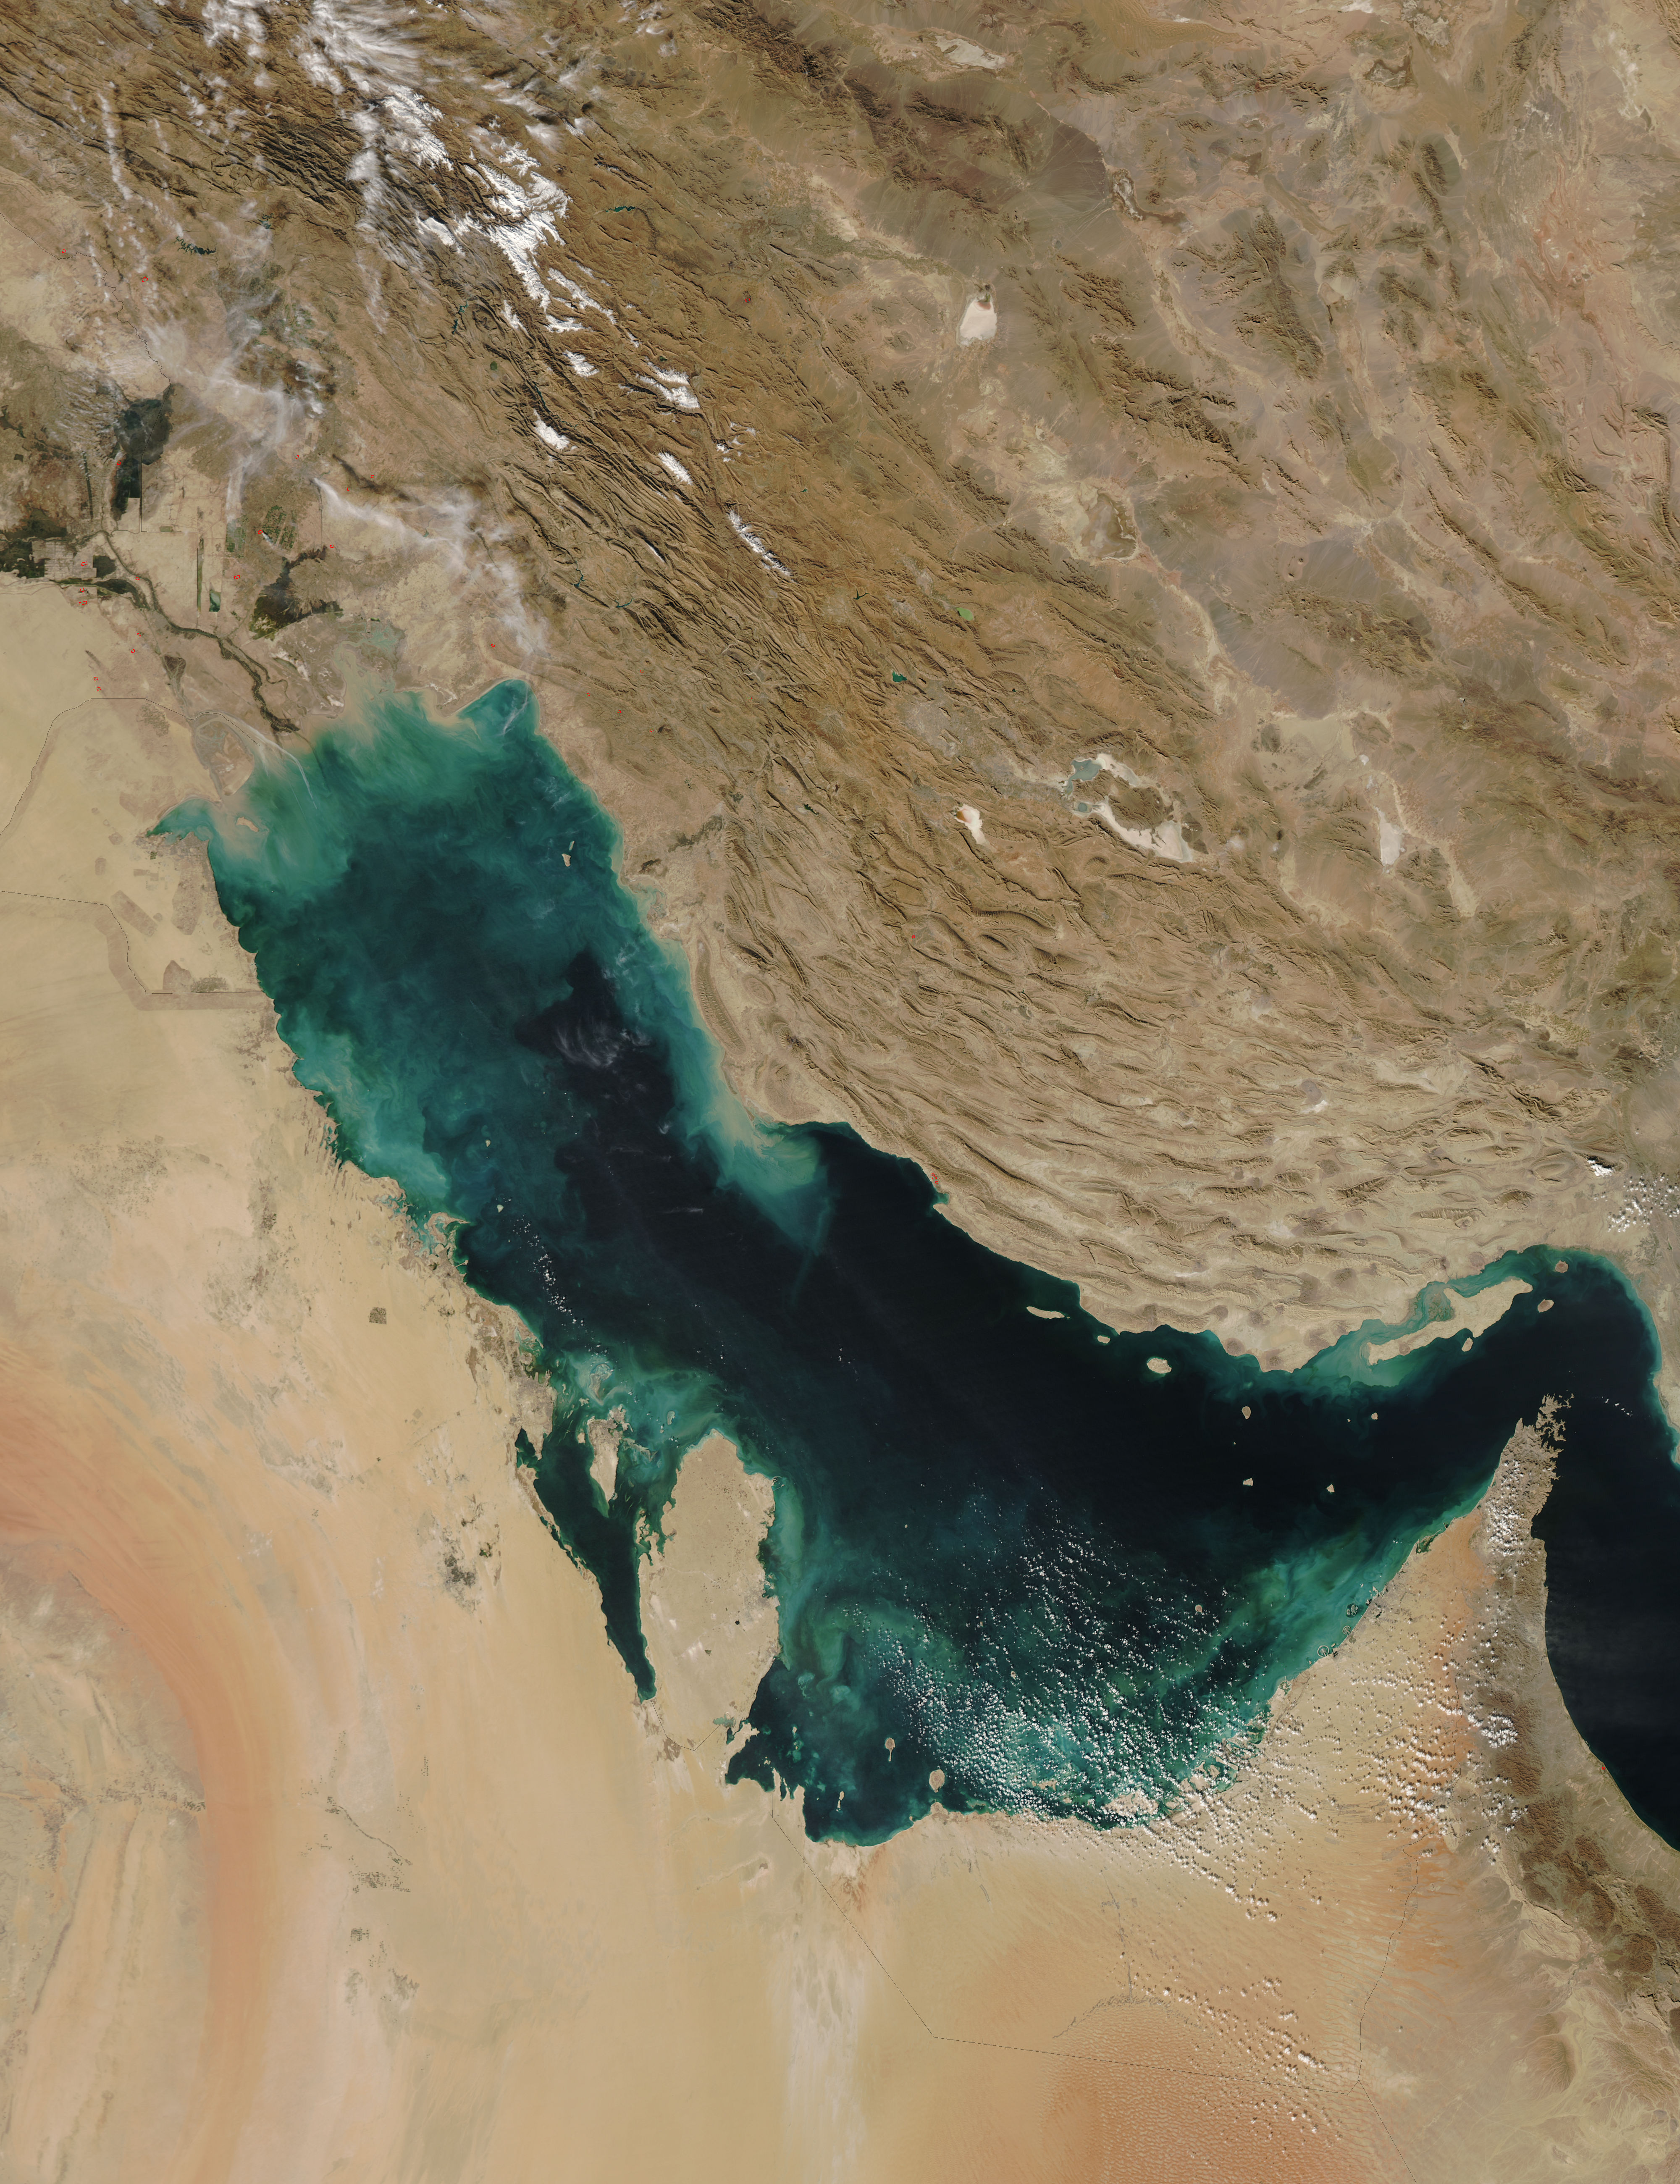 http://upload.wikimedia.org/wikipedia/commons/b/be/PersianGulf_vue_satellite_du_golfe_persique.jpg